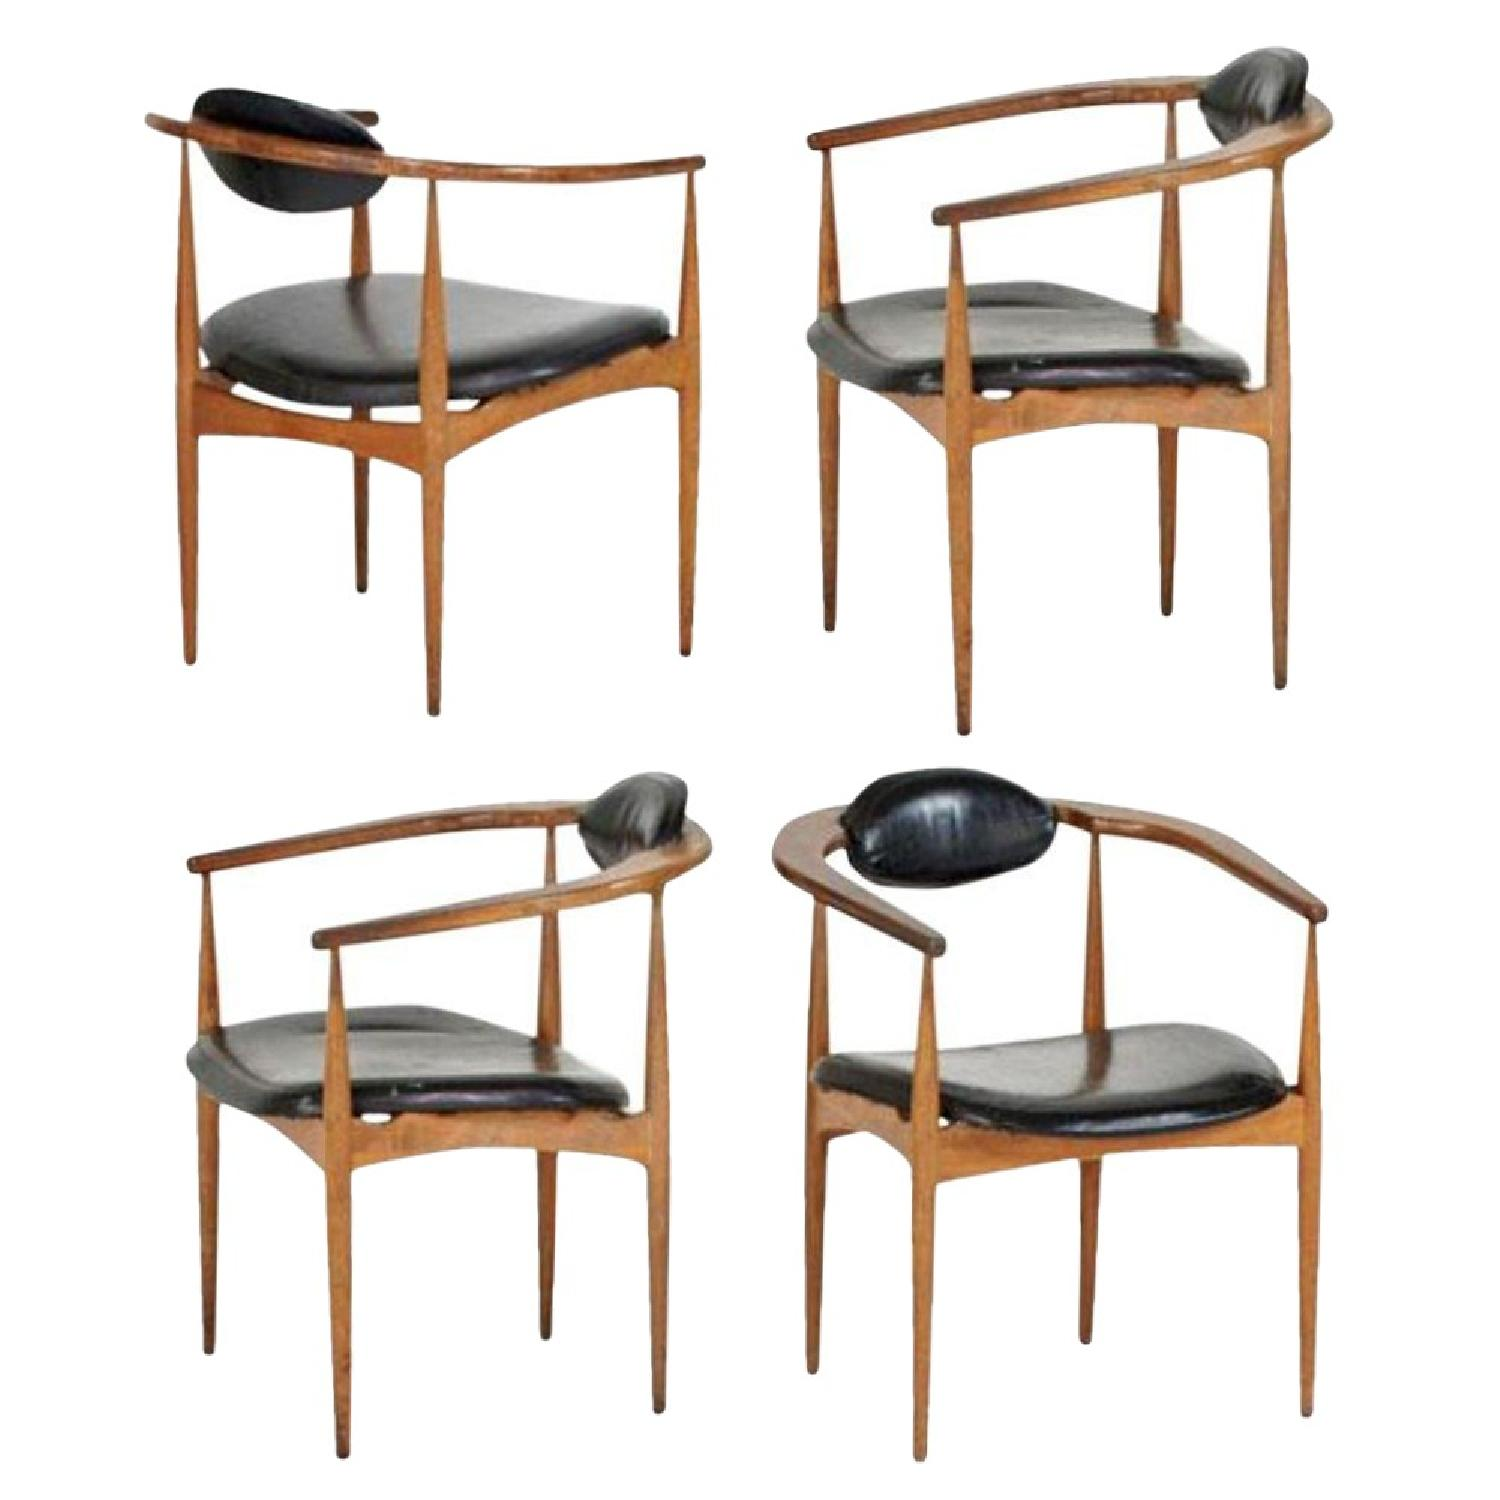 Vintage Adrian Pearsall Chairs - image-4